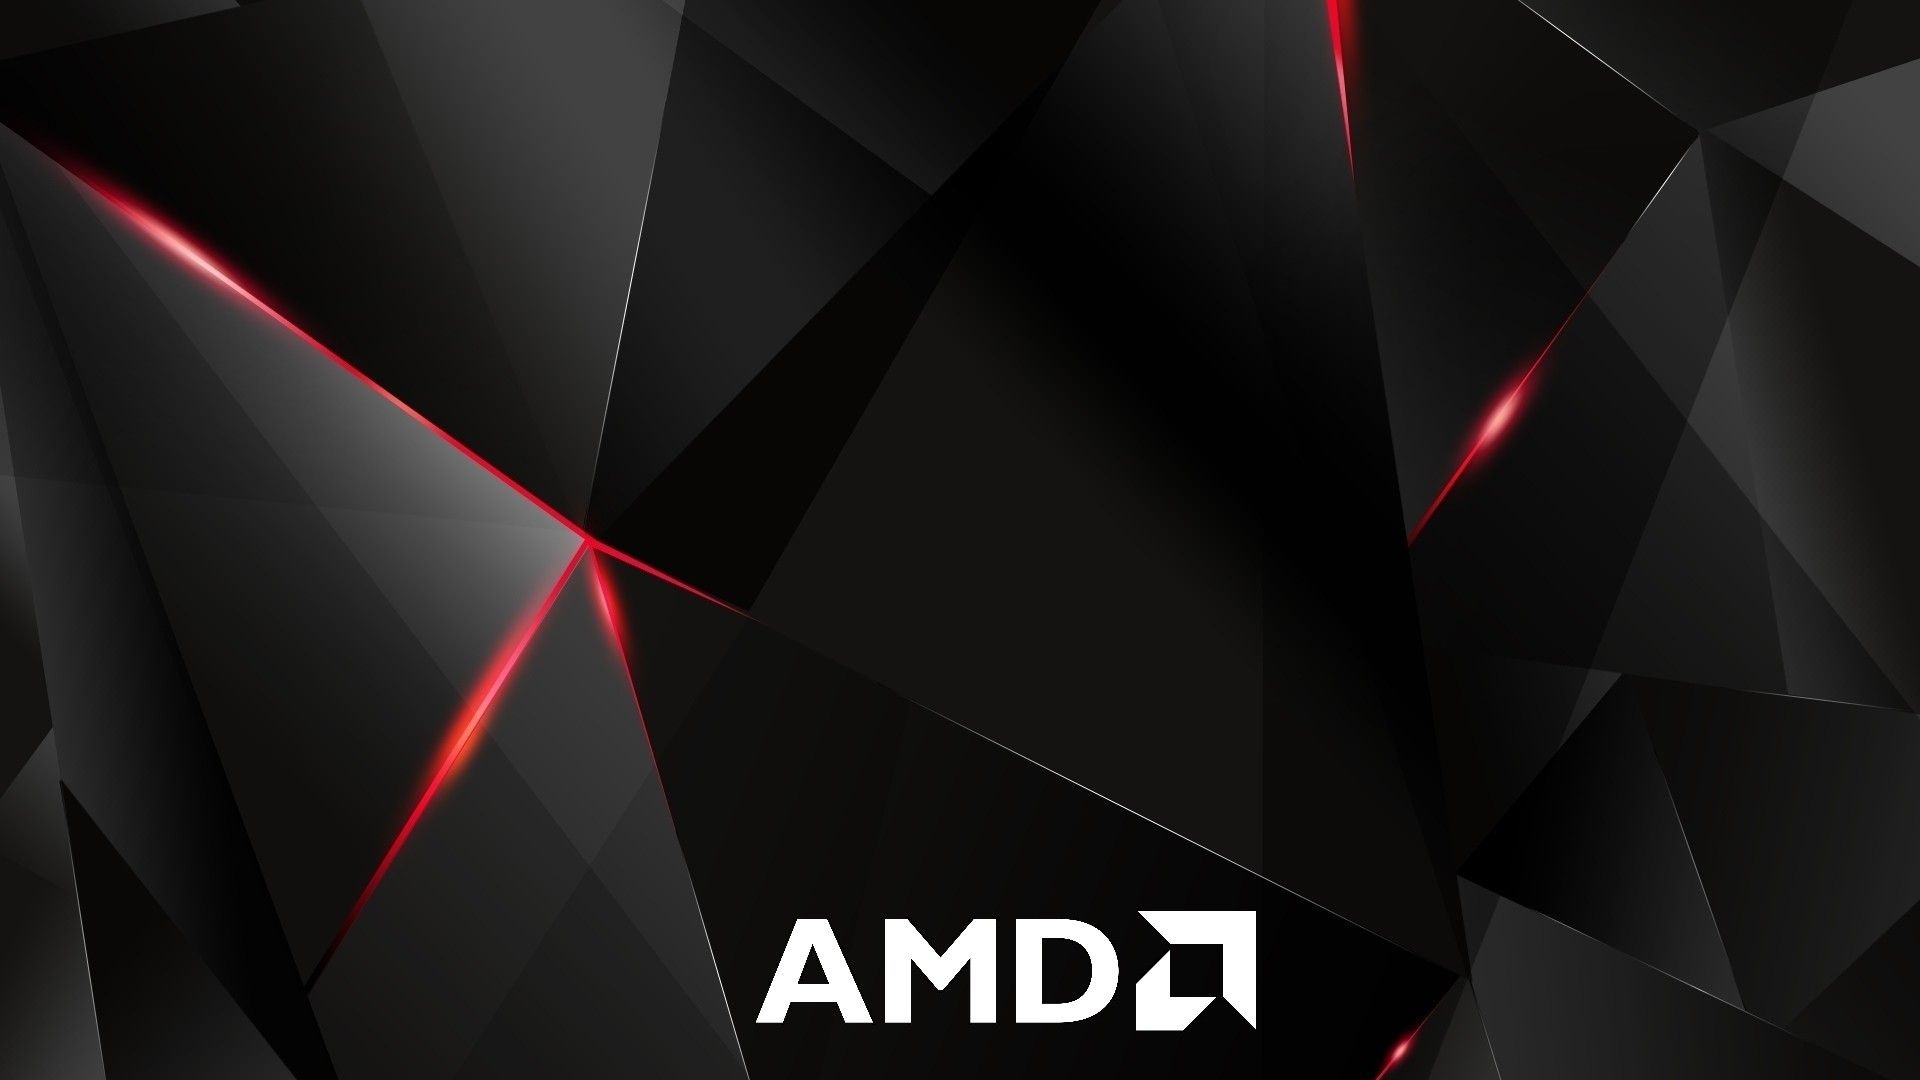 1920x1080 76+ Amd 4K Wallpapers on WallpaperPlay